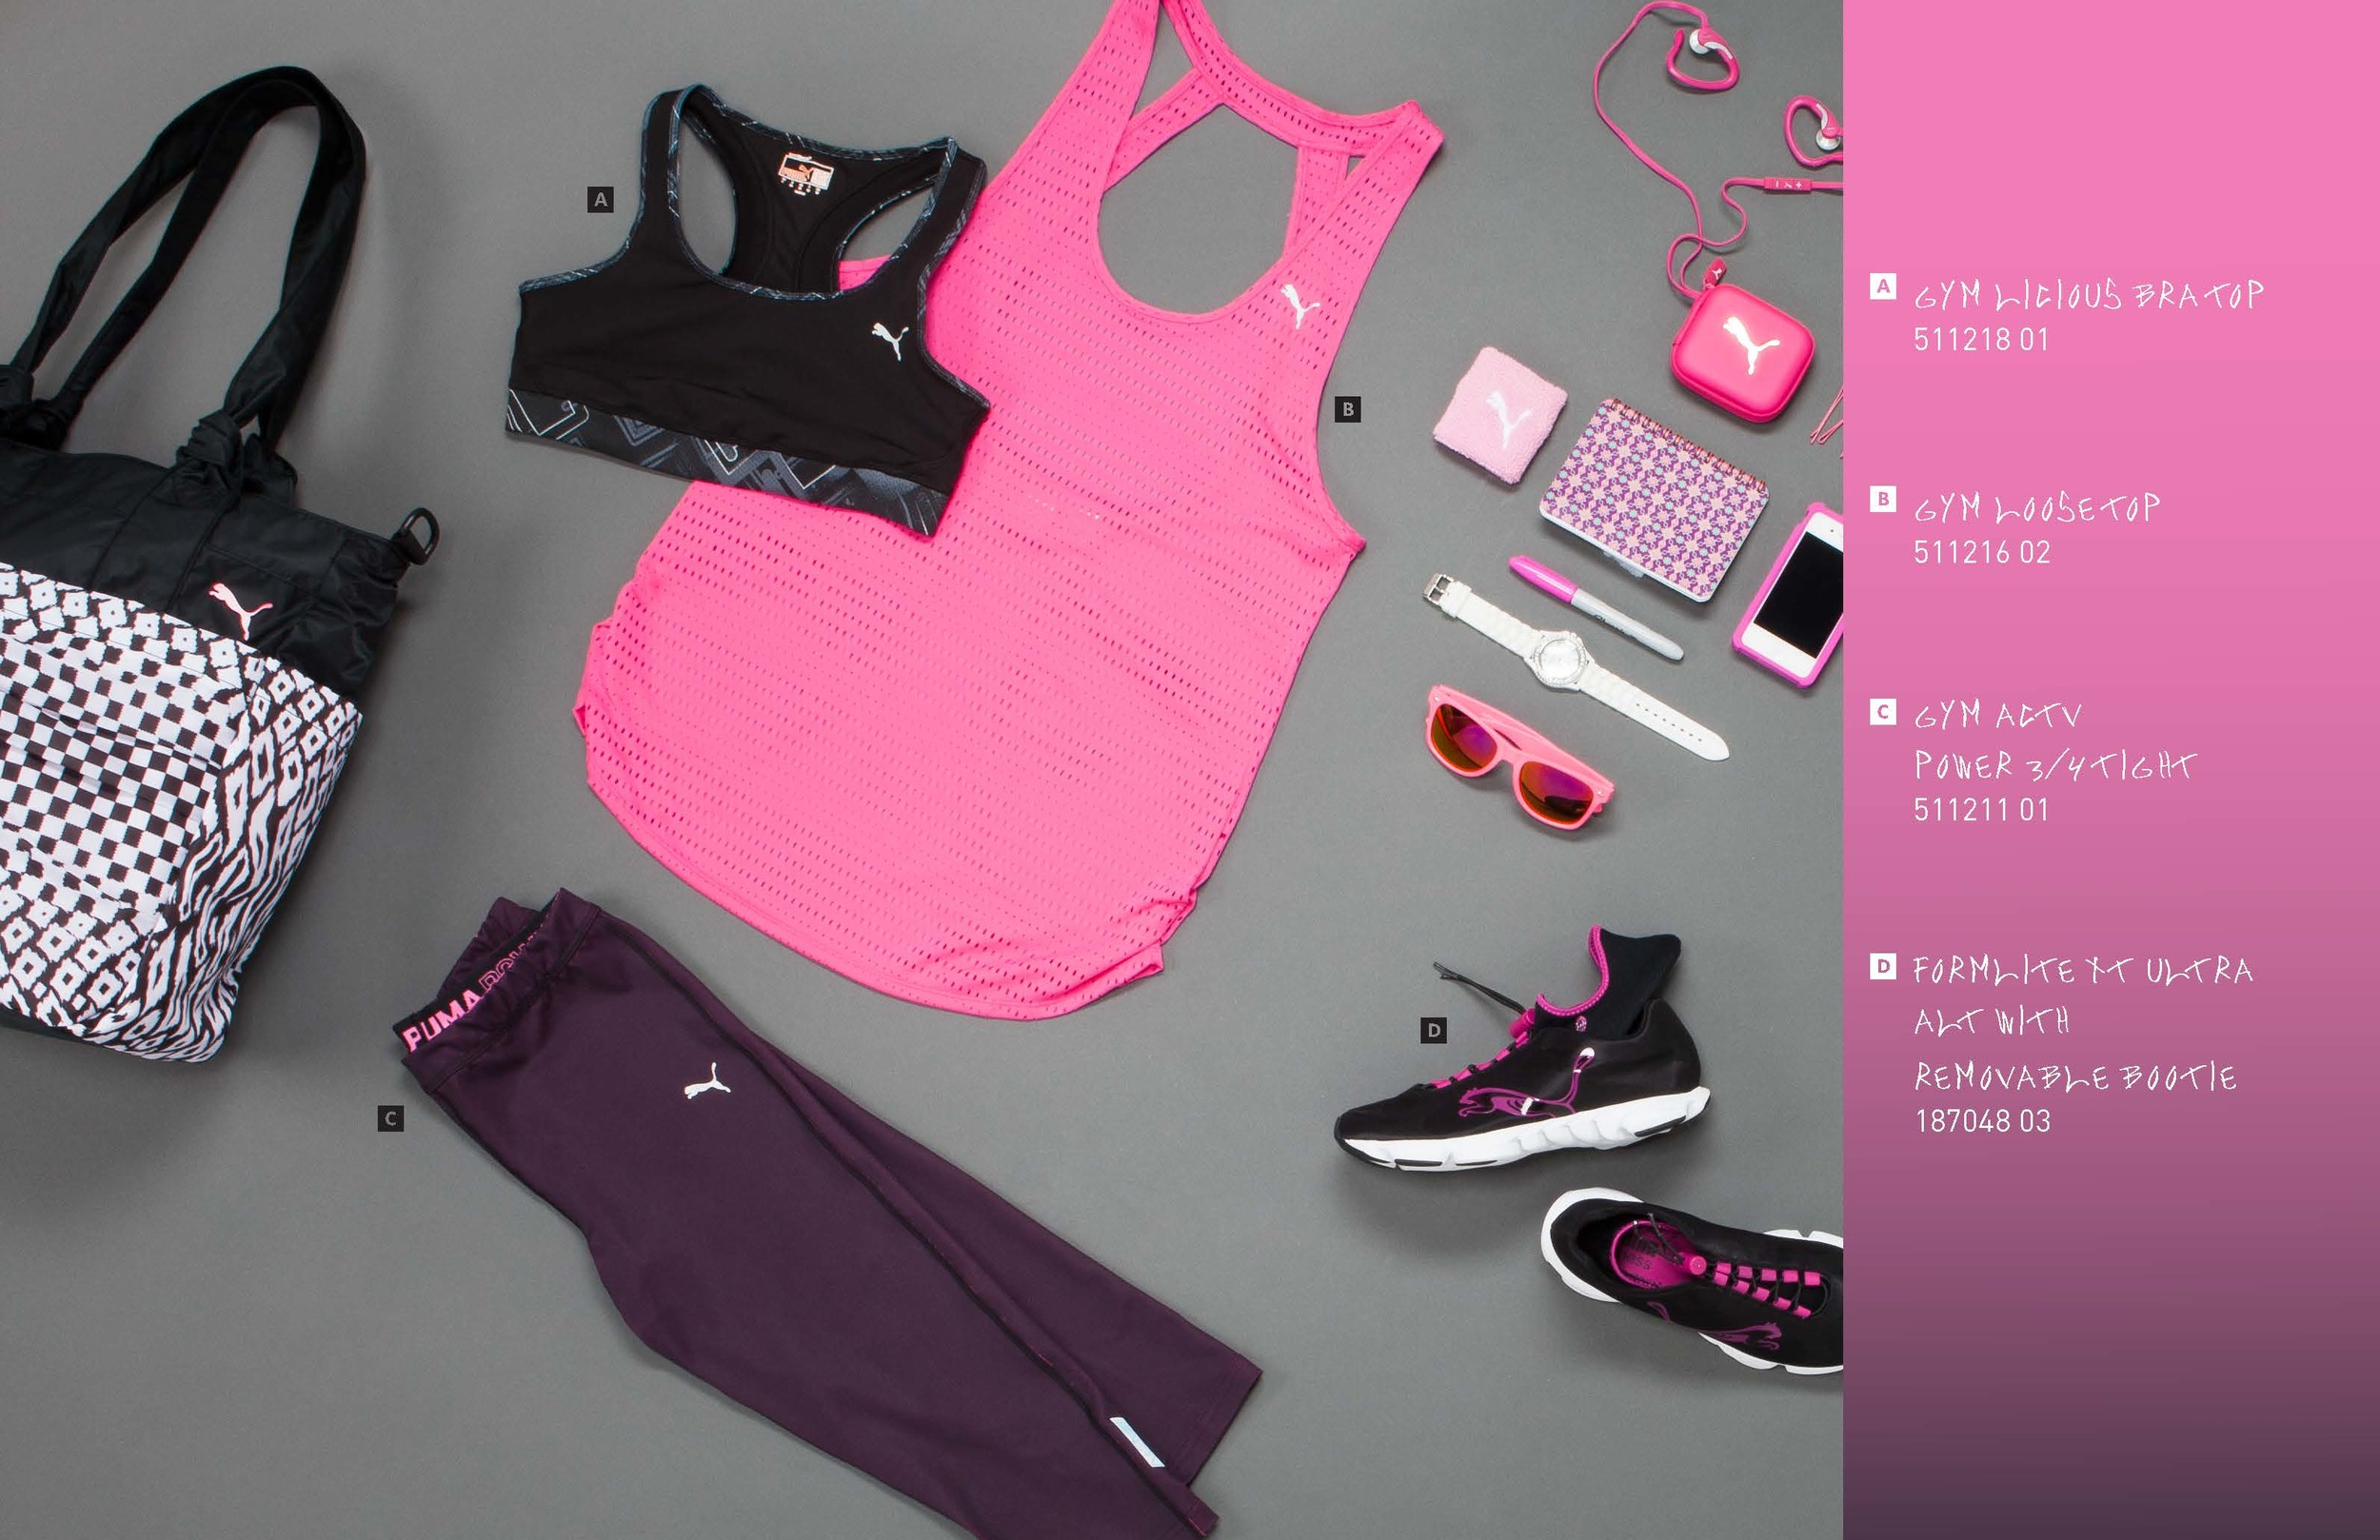 PUMA_booklet_7-30-13_HIRES_view_Page_09.jpg